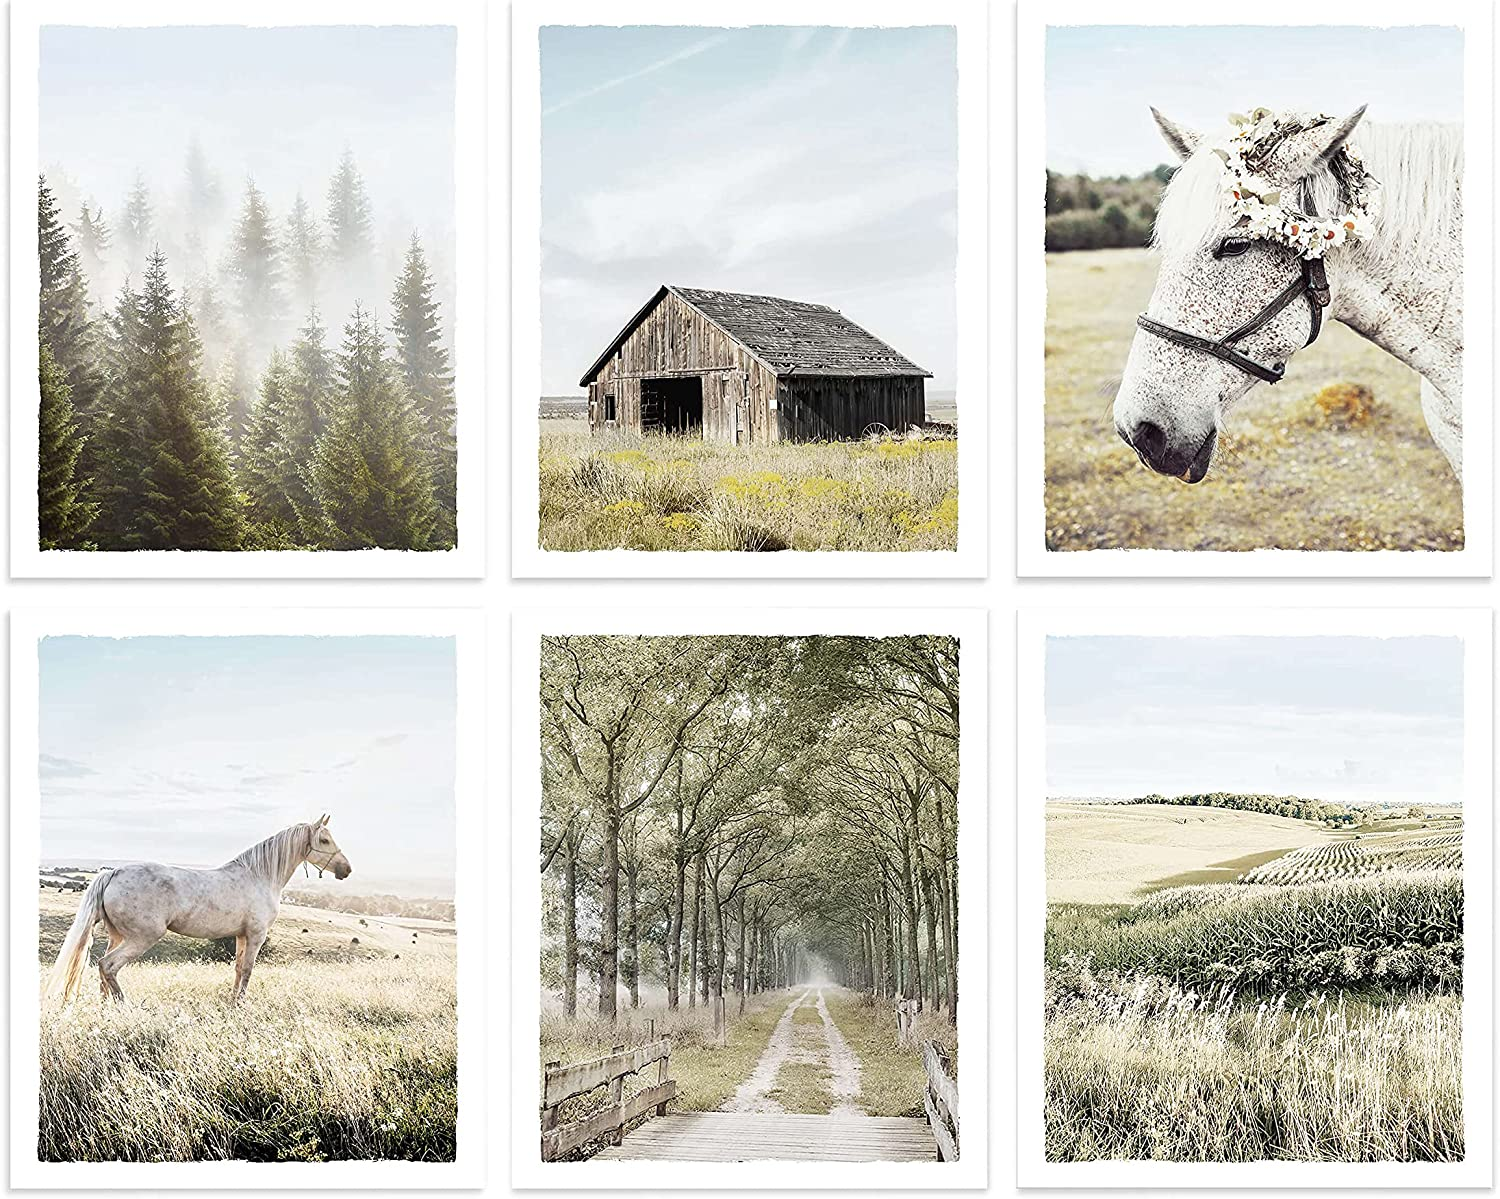 Countryside Landscape Pictures Wall Art - Rustic Farmhouse Barn Prints White Horse Photograph Misty Forest Grassland Nature Artwork for Home Decor, UNFRAMED, 8x10 Inches, Set of 6